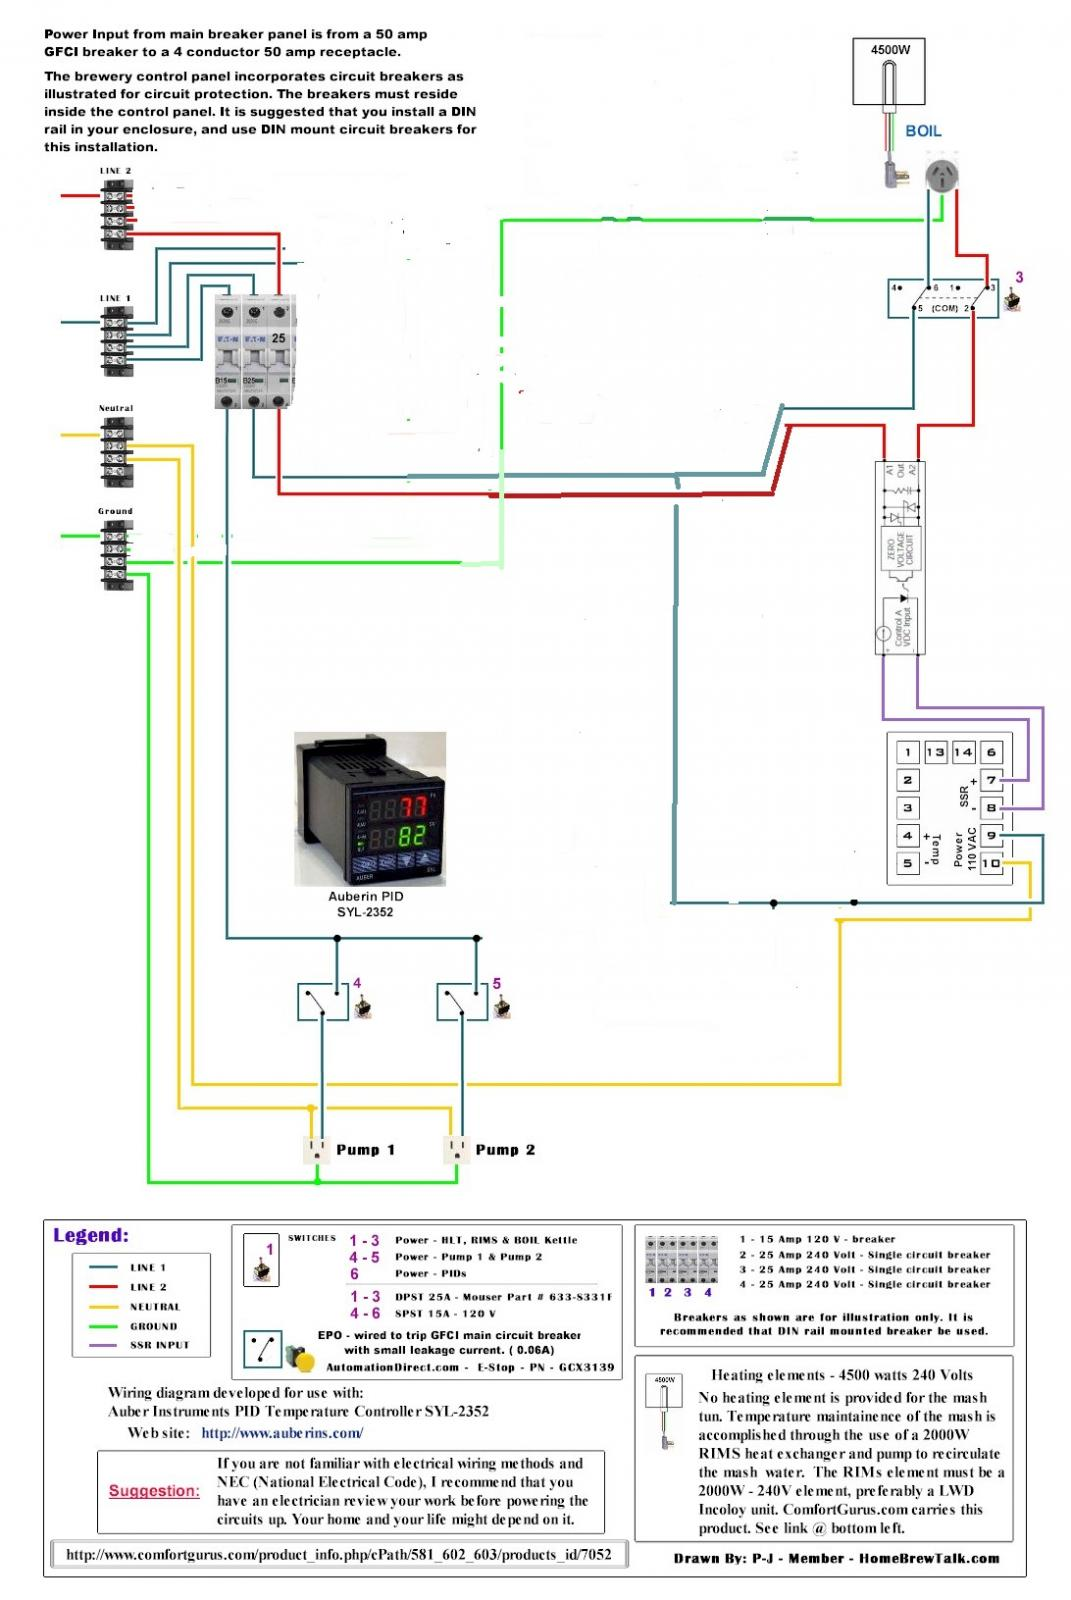 auberin-wiring1-a13-rob-may-syl-2352-4500w_tweaked